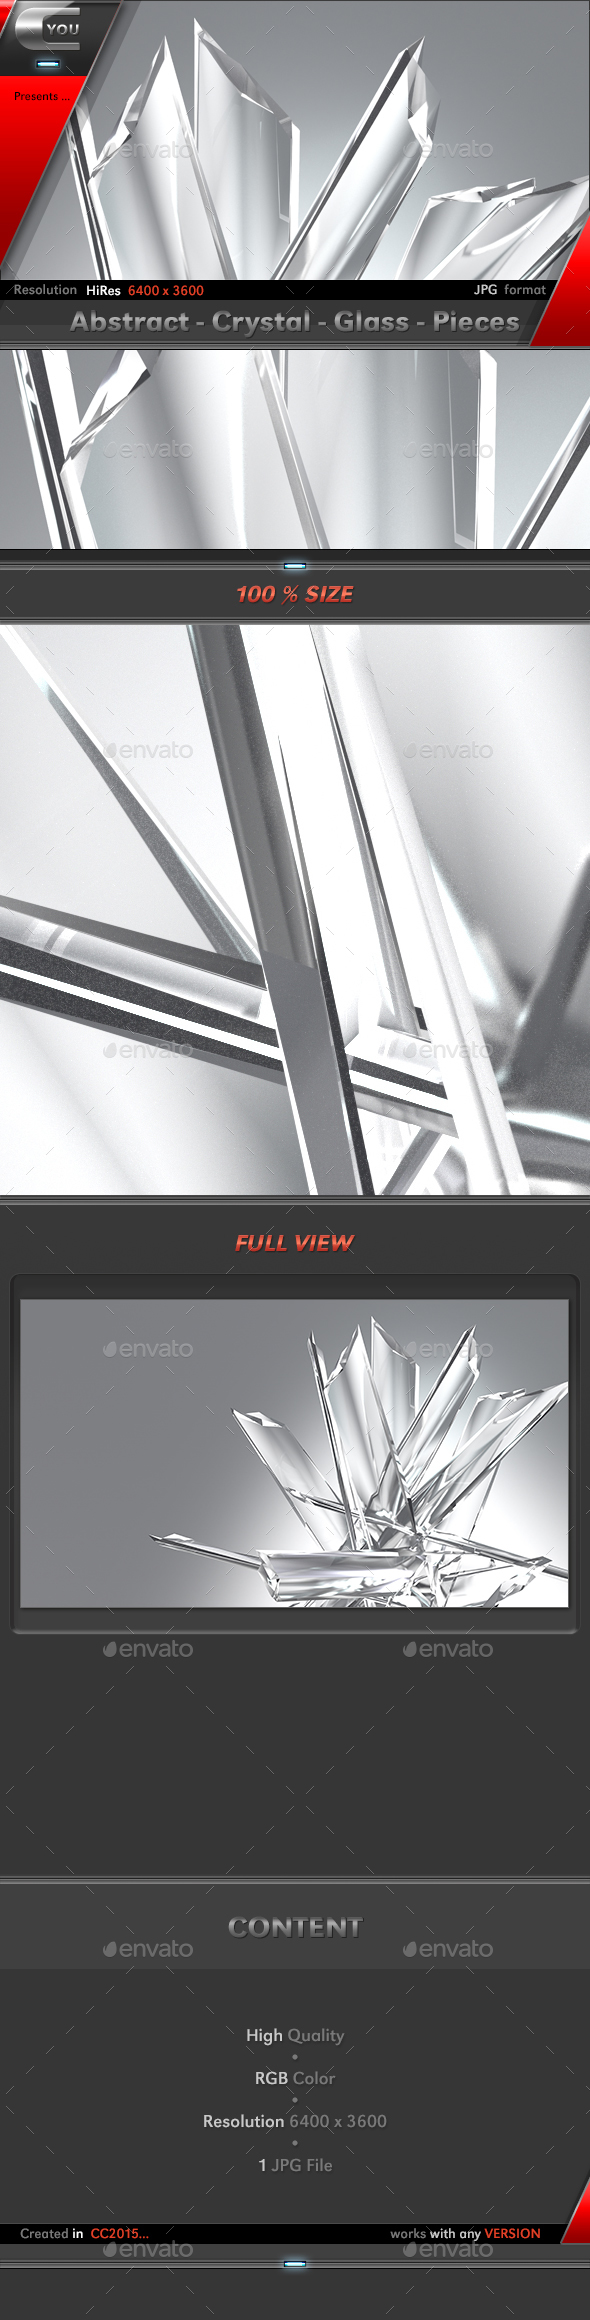 GraphicRiver Abstract Crystal Glass Pieces 20313291